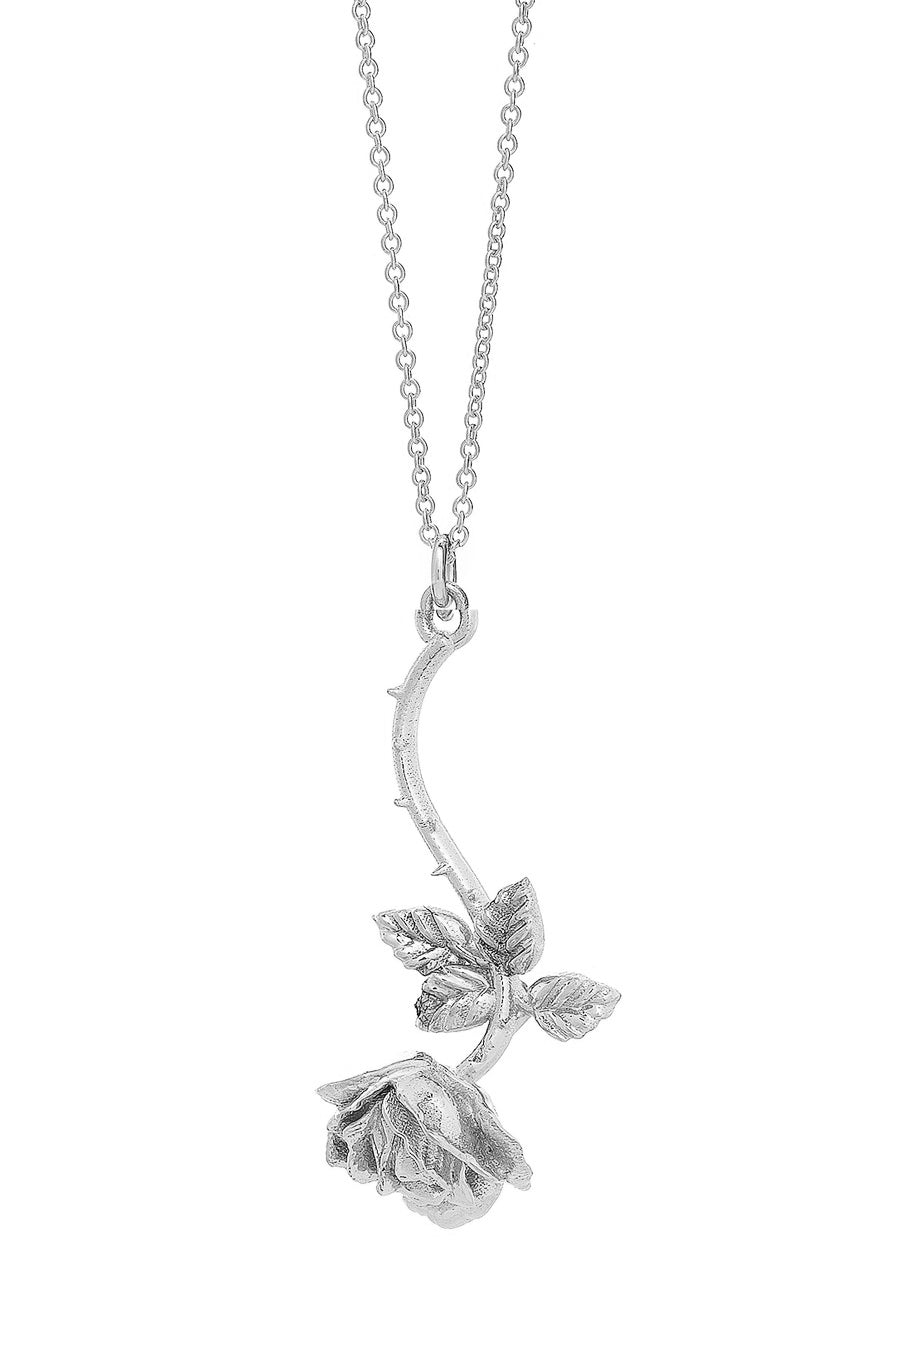 Hanging Rose Pendant in Sterling Silver